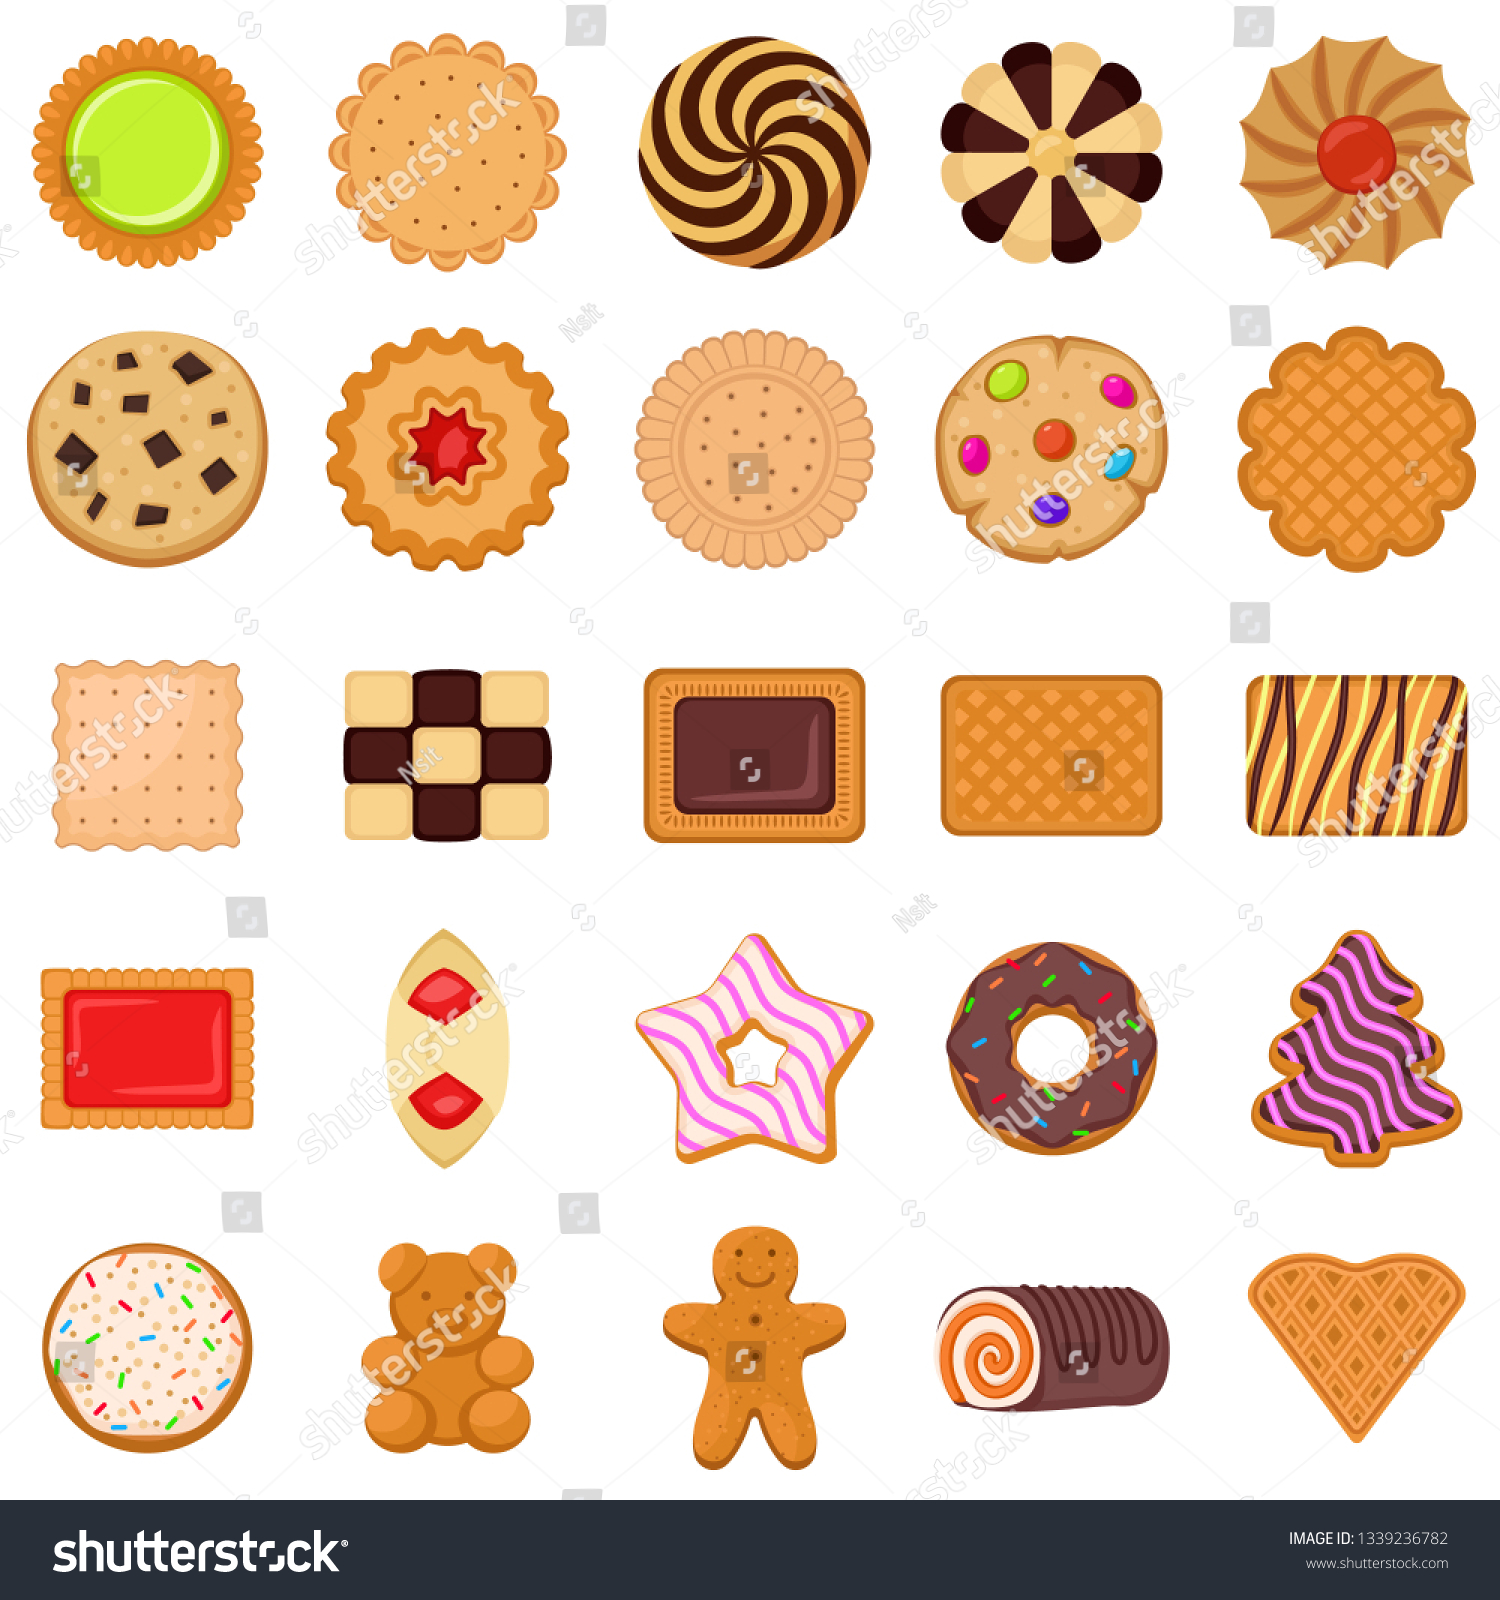 biscuit icons set flat set biscuit stock vector royalty free 1339236782 https www shutterstock com image vector biscuit icons set flat vector web 1339236782